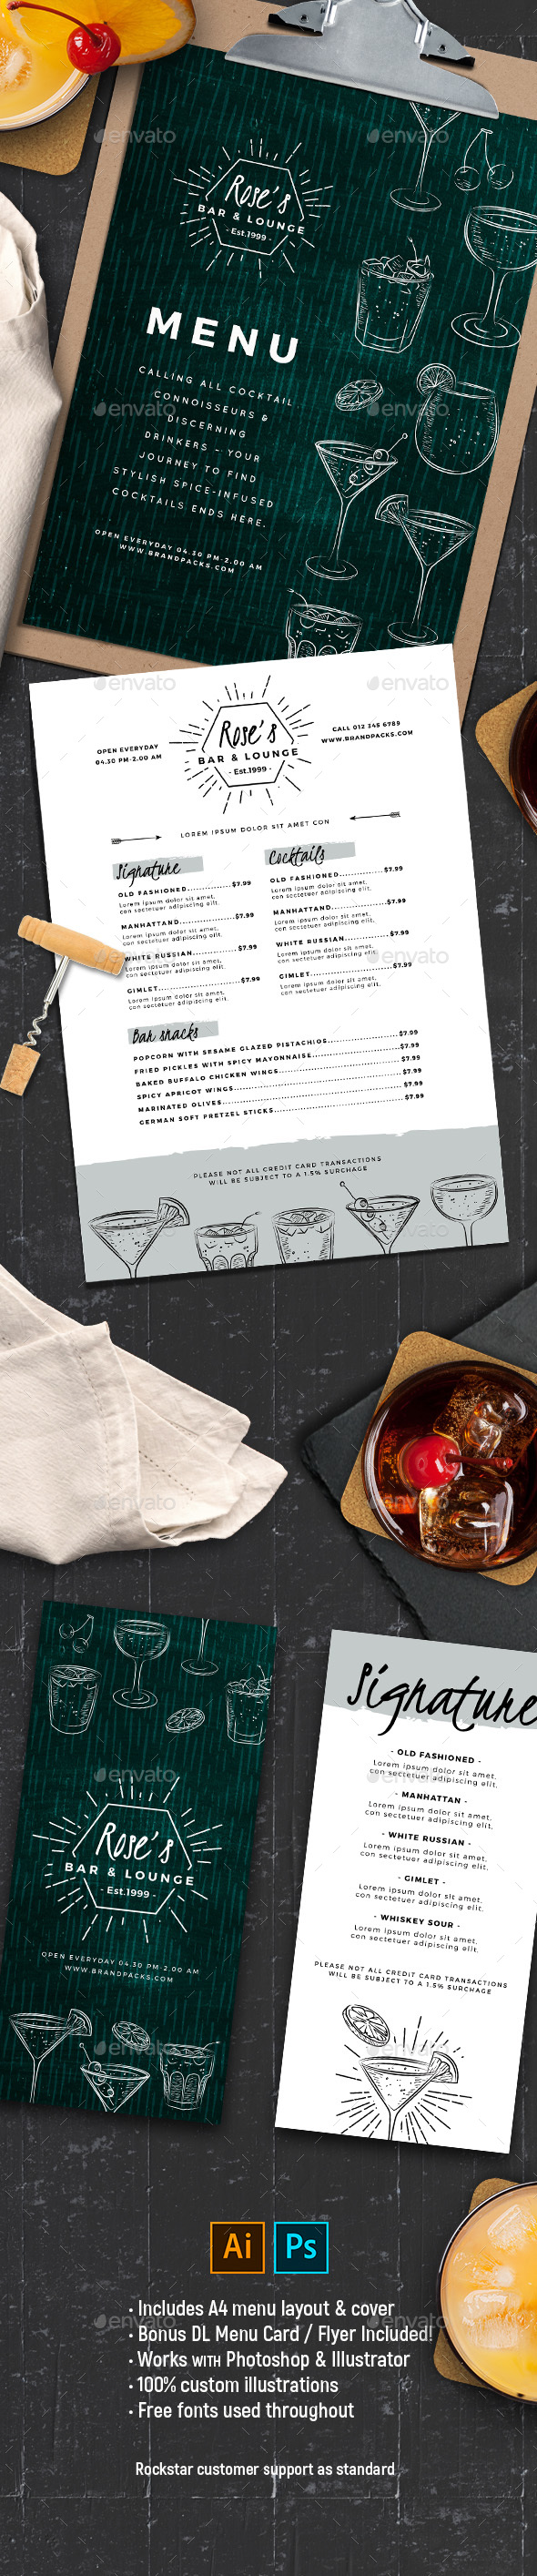 Cocktail Menu Template - Food Menus Print Templates